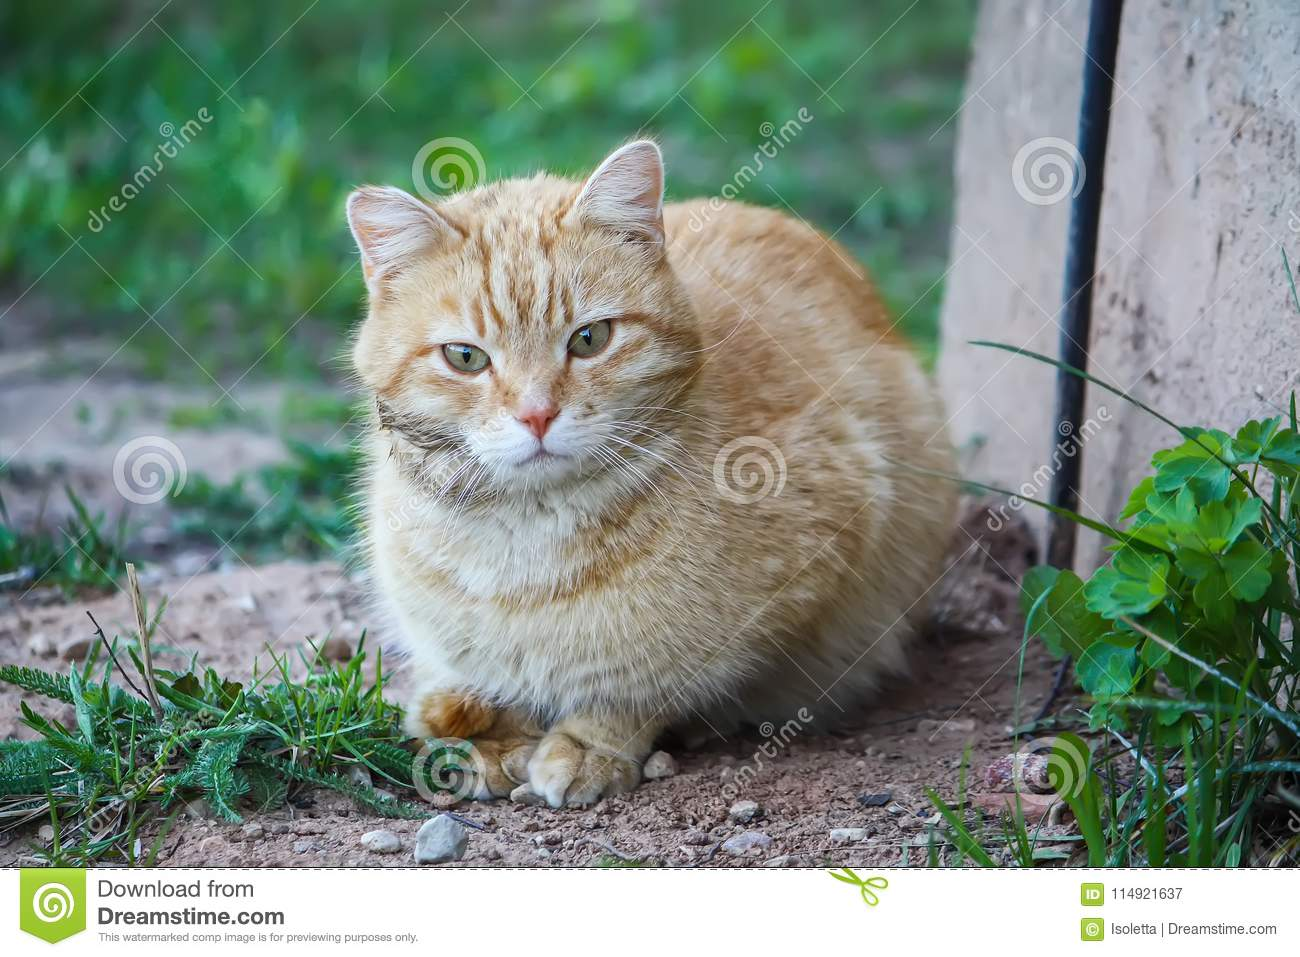 Young active cat with green eyes on summer grass background in a country yard.